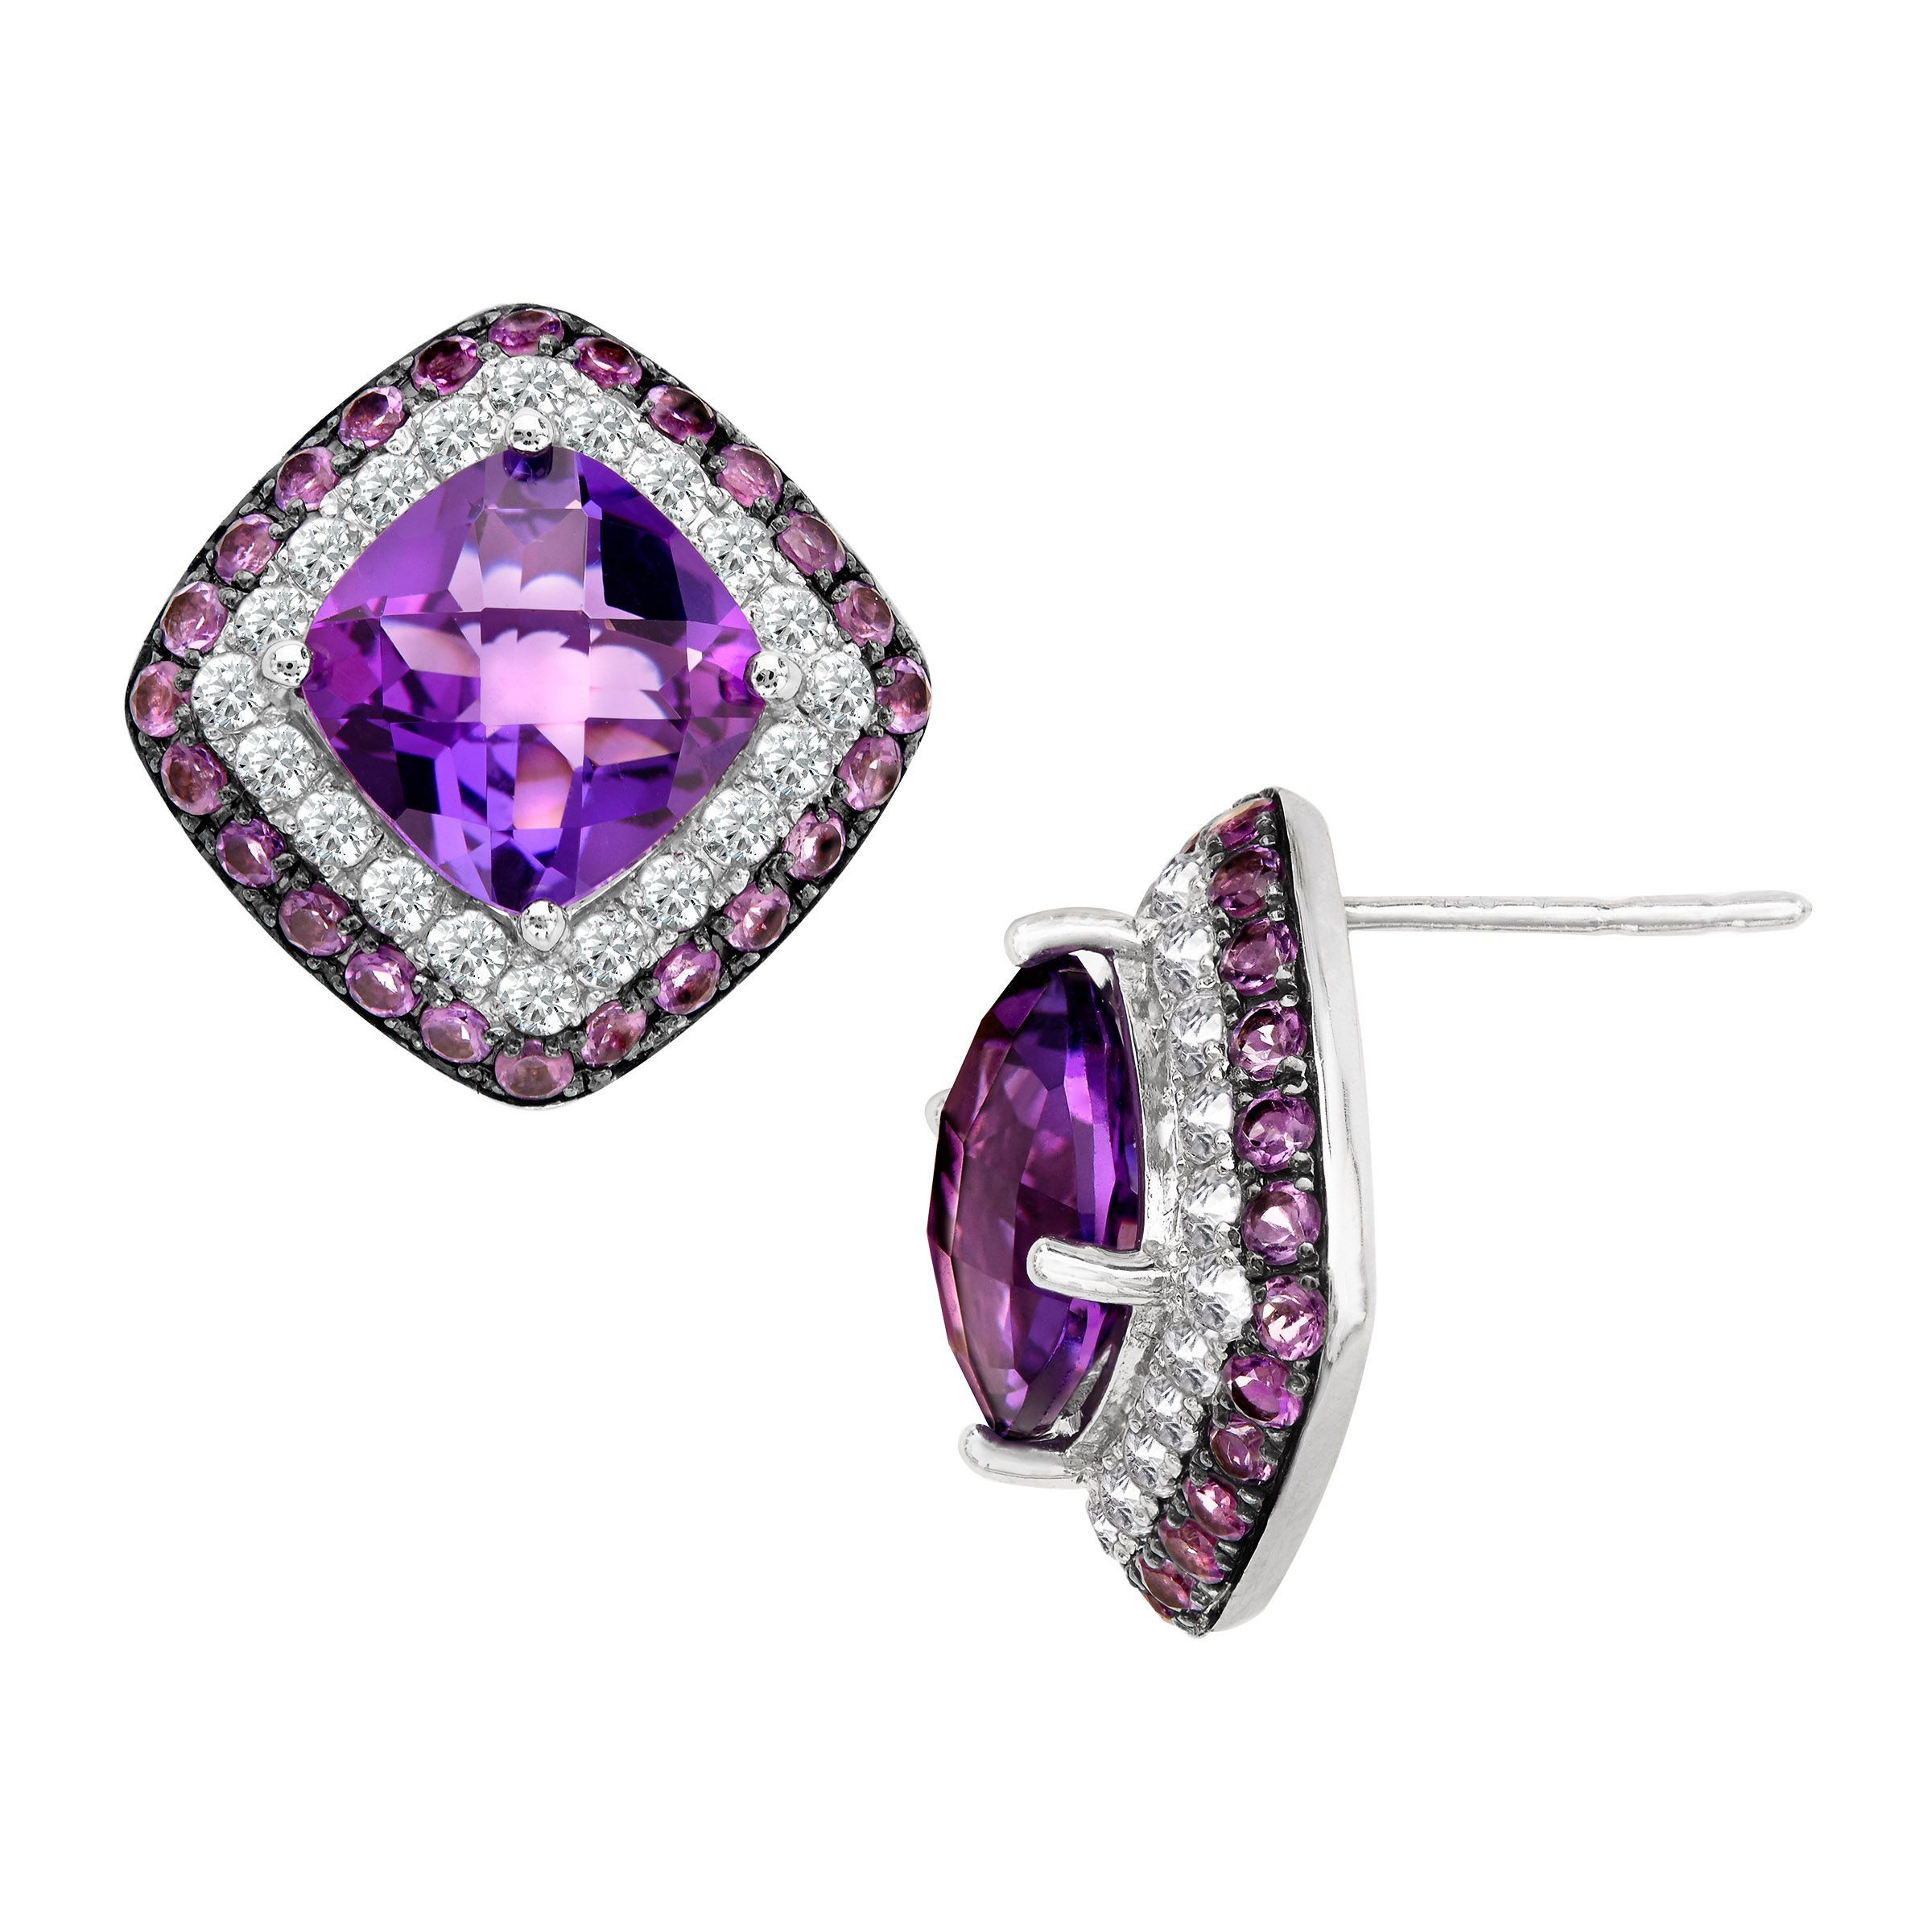 6 1 8 Ct Natural Amethyst White Topaz Stud Earrings In Sterling Silver